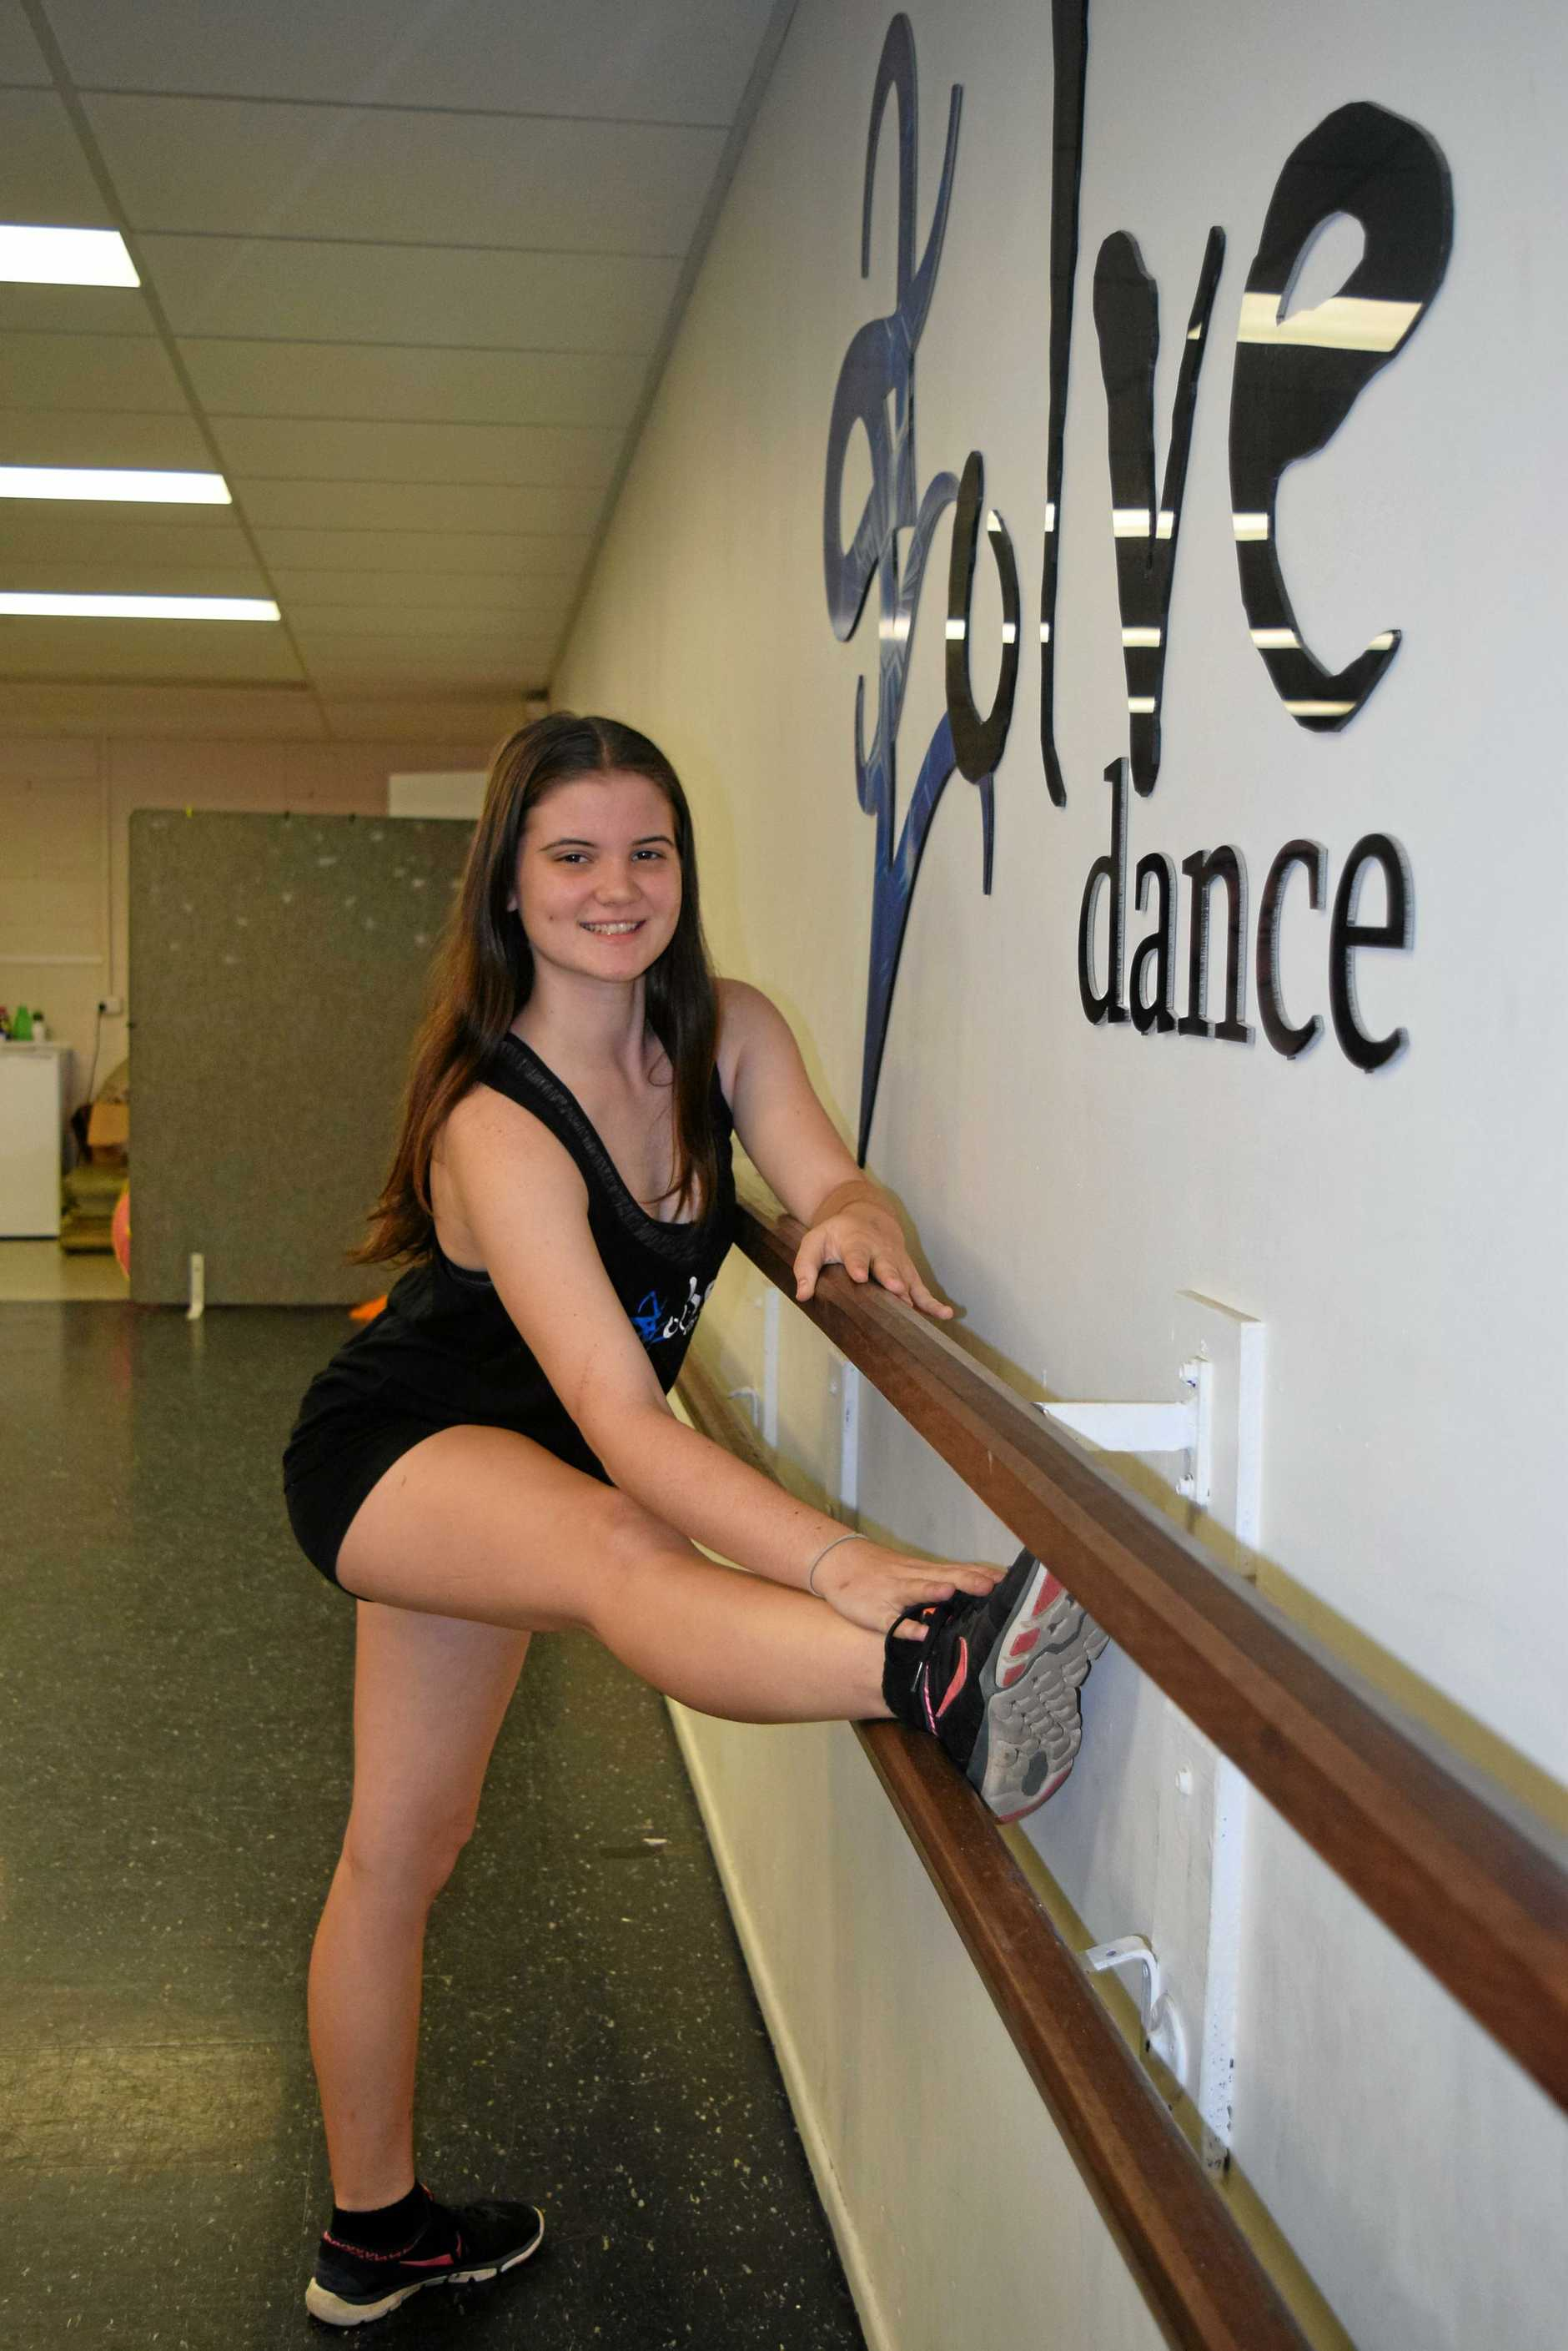 TALENTED: Evolve Dance Studio student Abbey Murray will be stretching her talents at Lee Academy in Sydney next year.